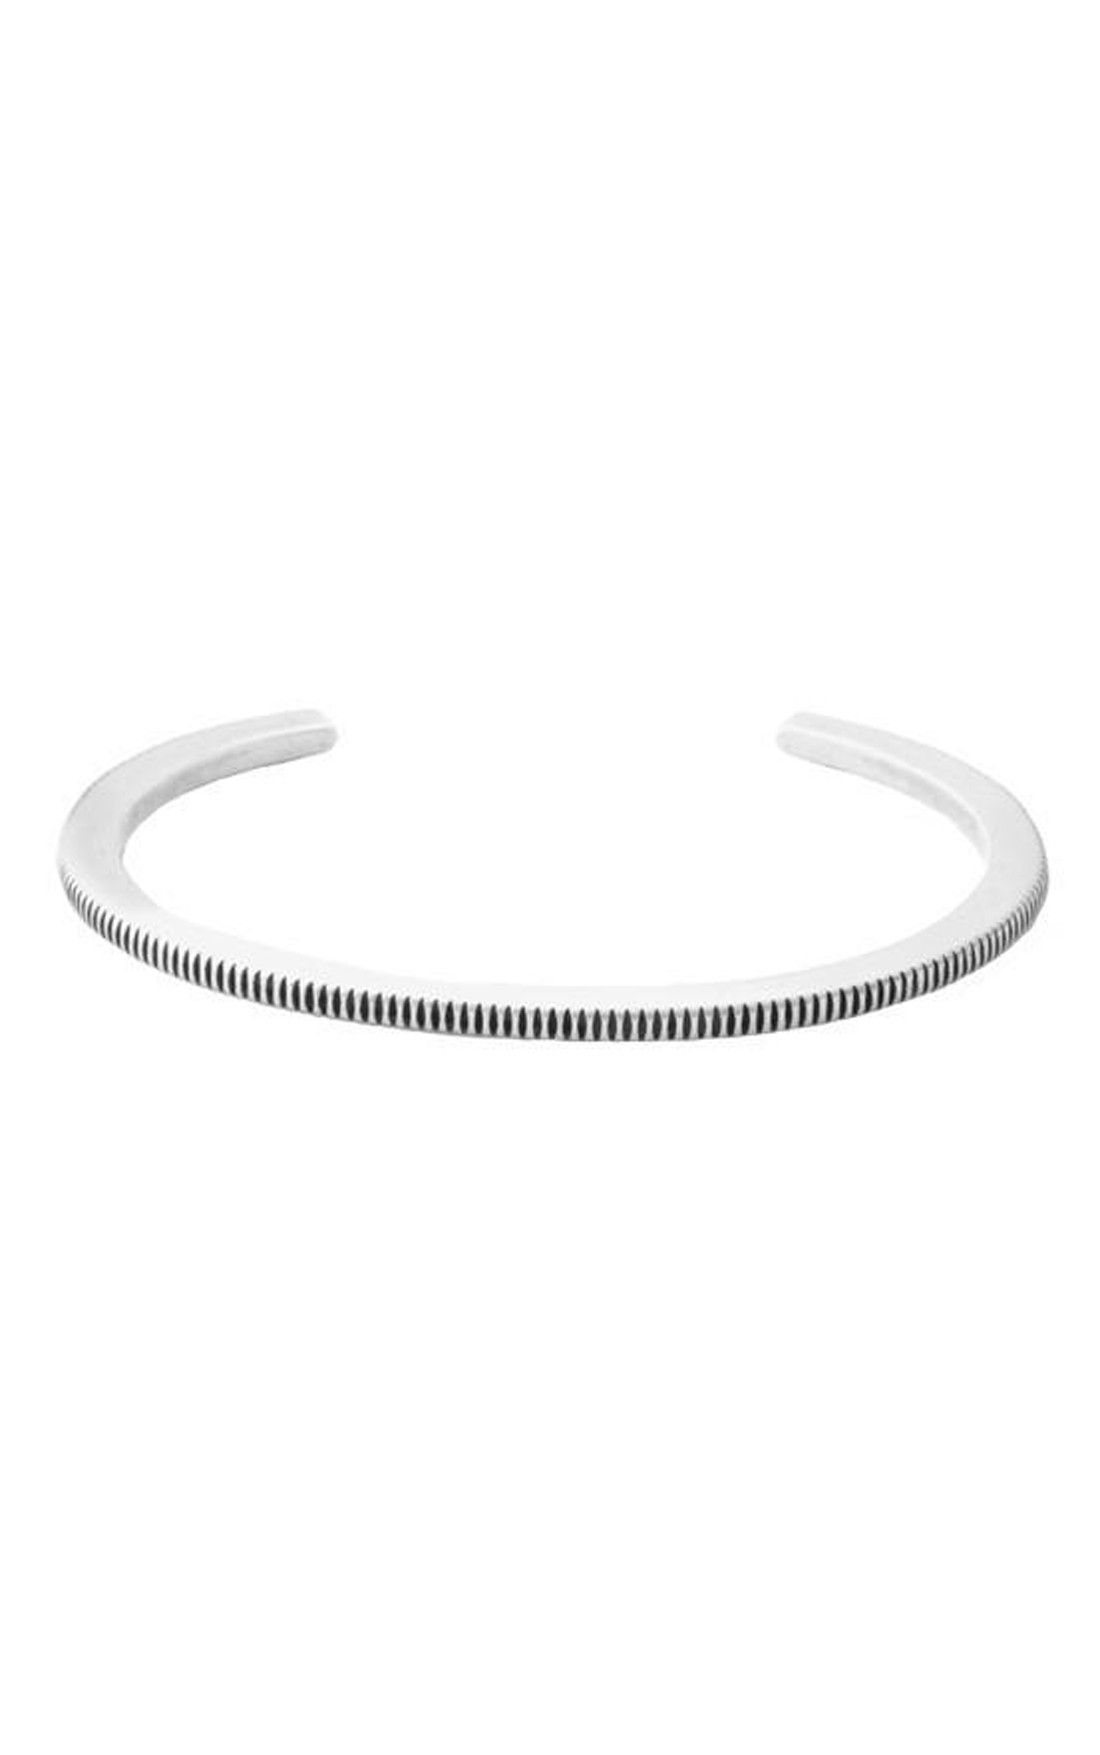 King Baby - Thin Coin Edge Cuff (K40-5825)